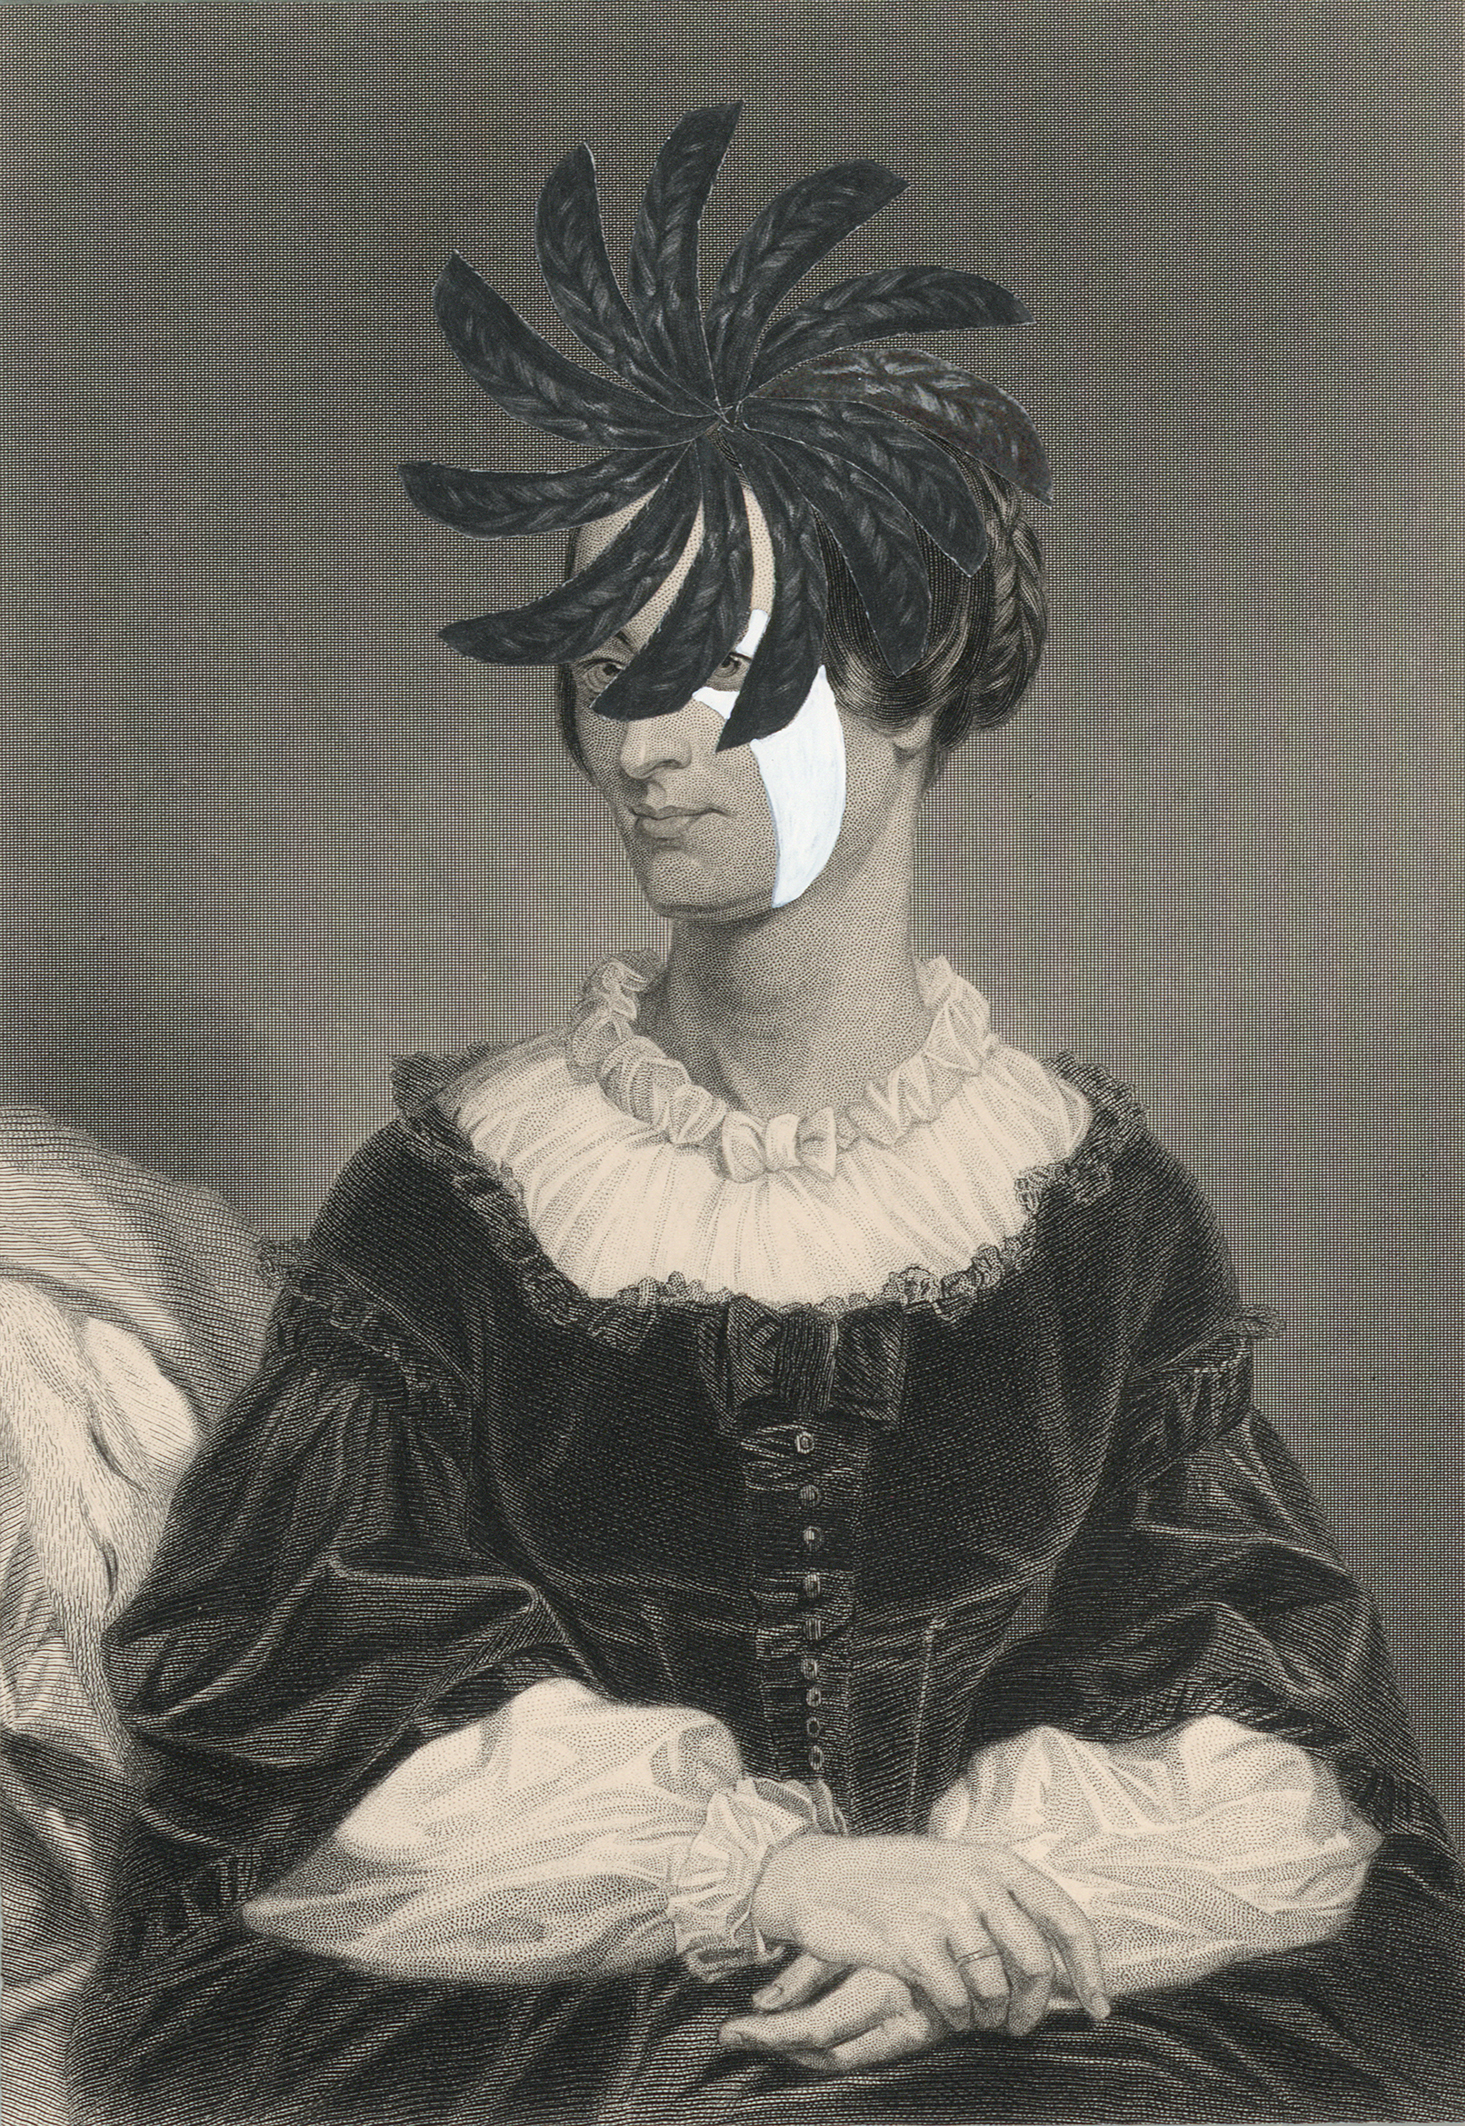 "Mrs. Jacob Brewster 1859/2014  , gouache and collage on 19th century engraving, 7"" x 5"", 2014"